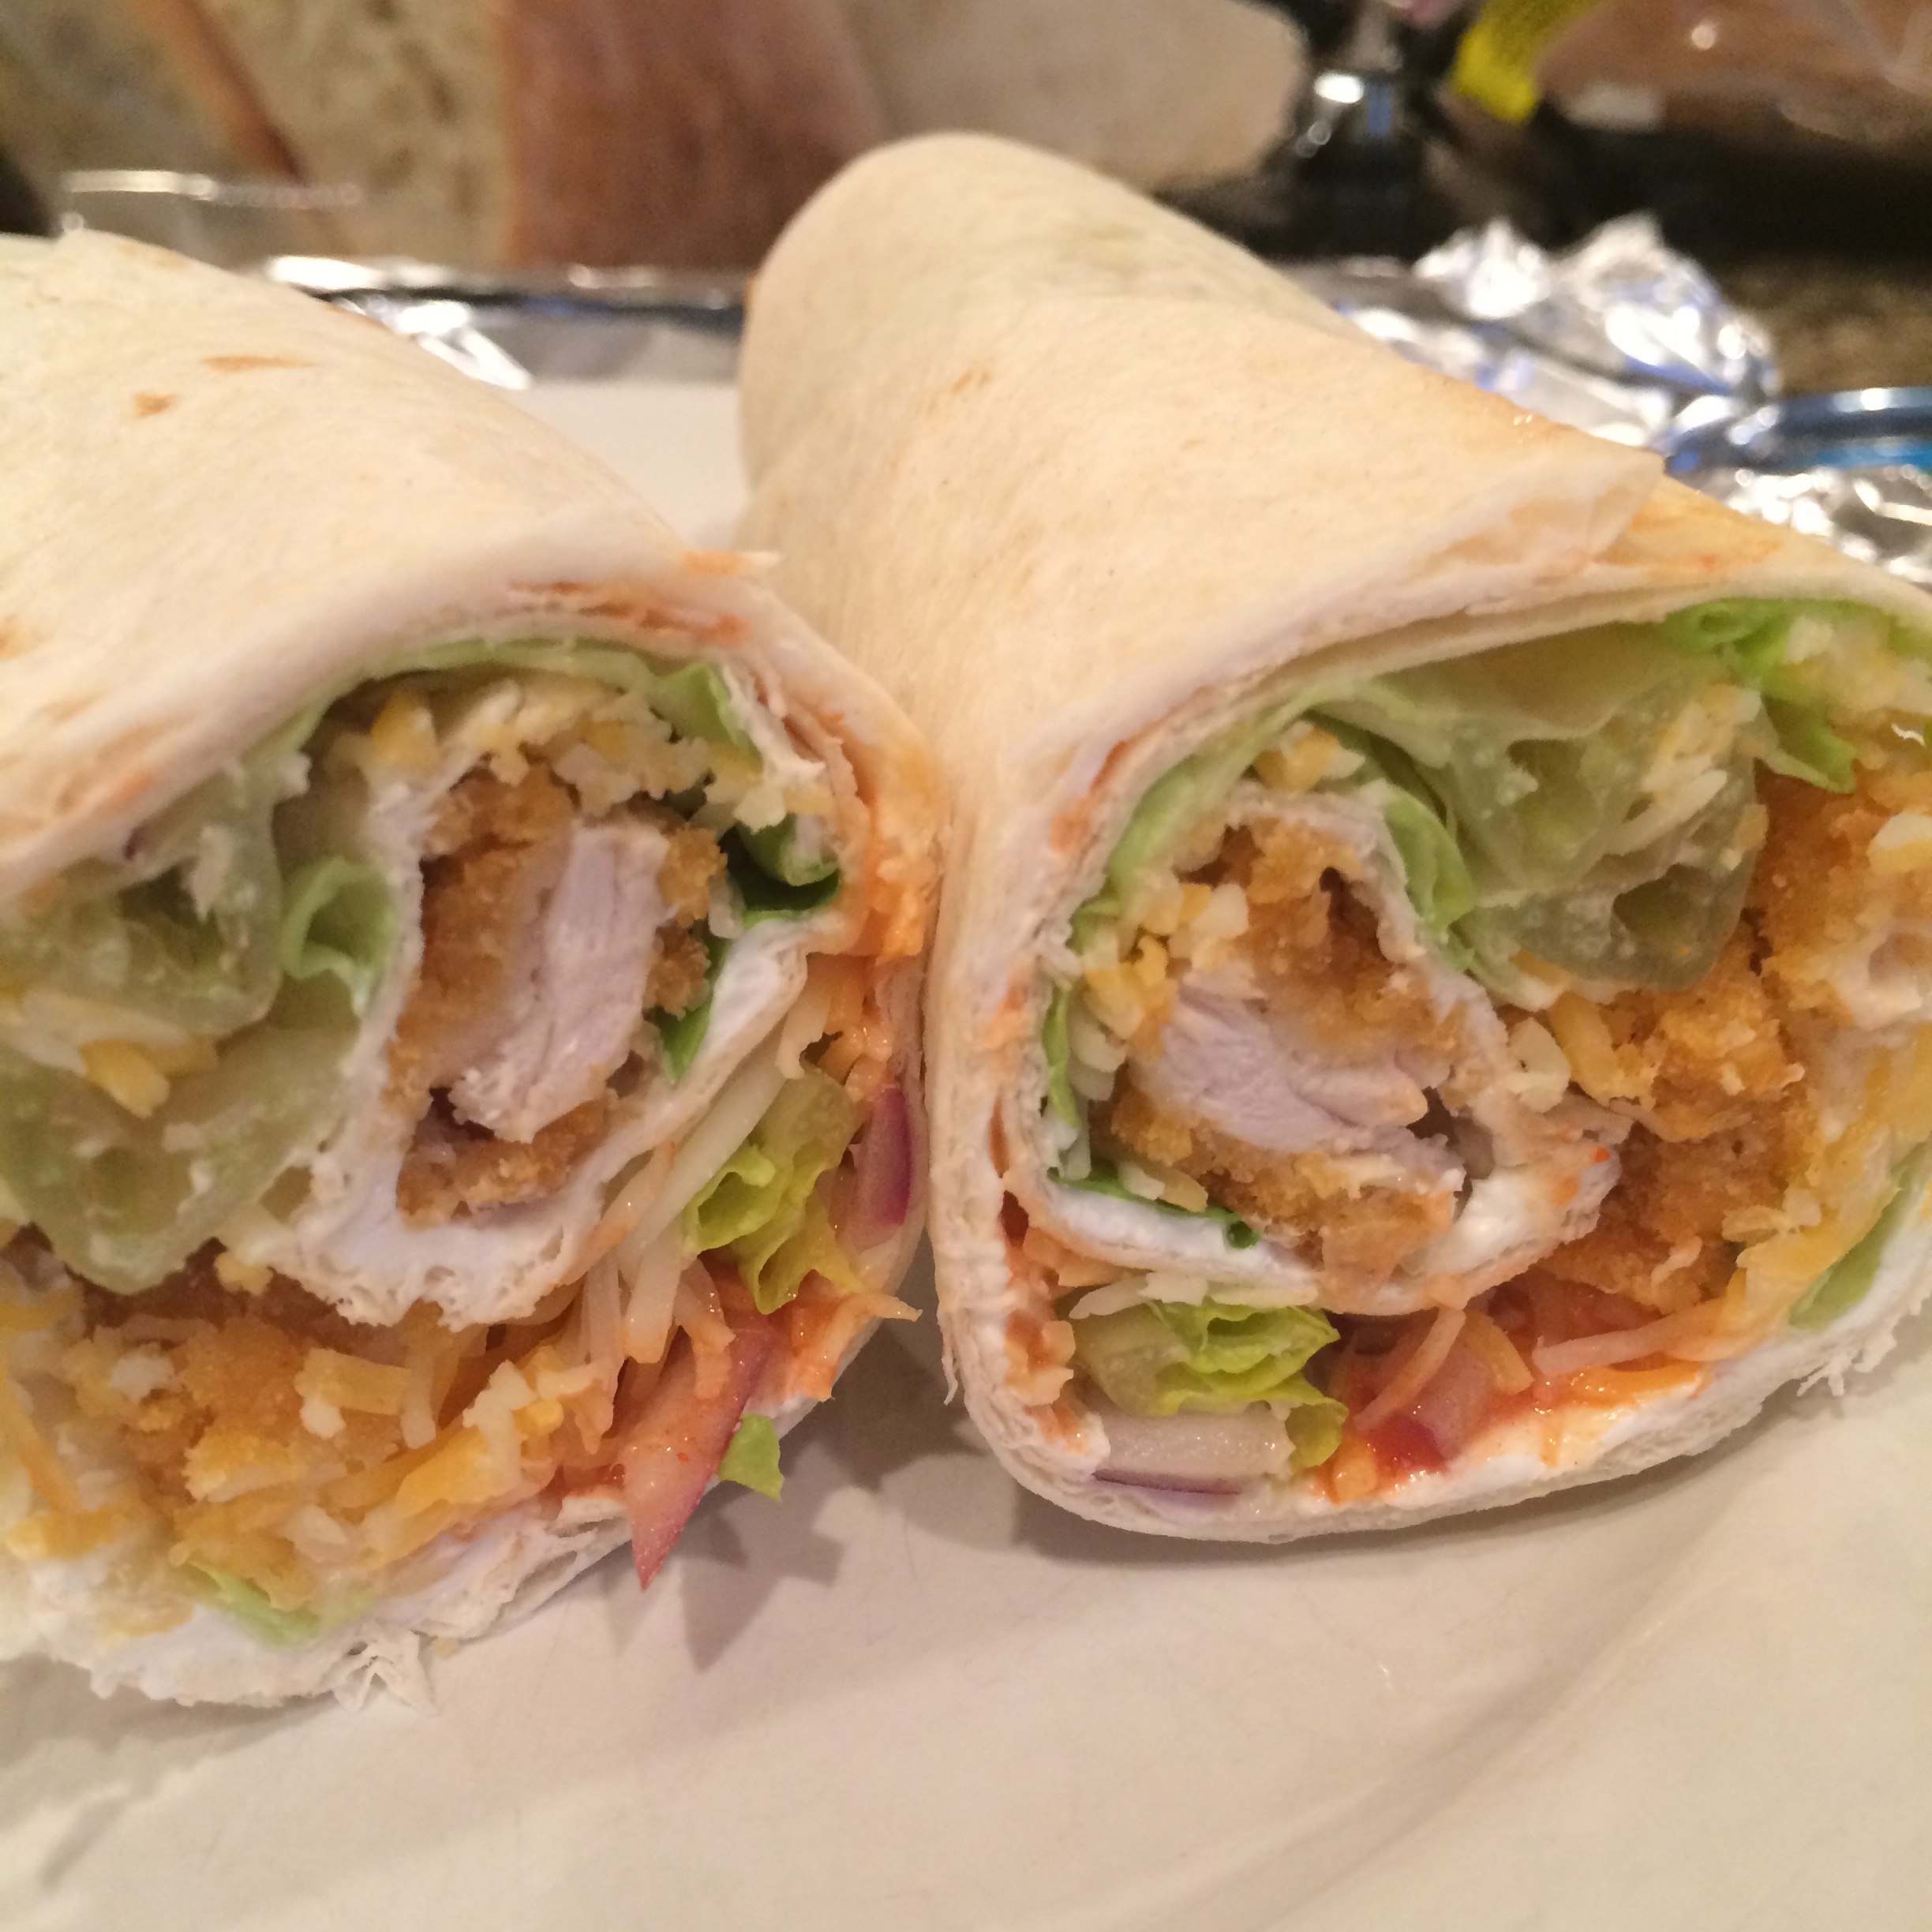 Crunchy Chicken Wrap